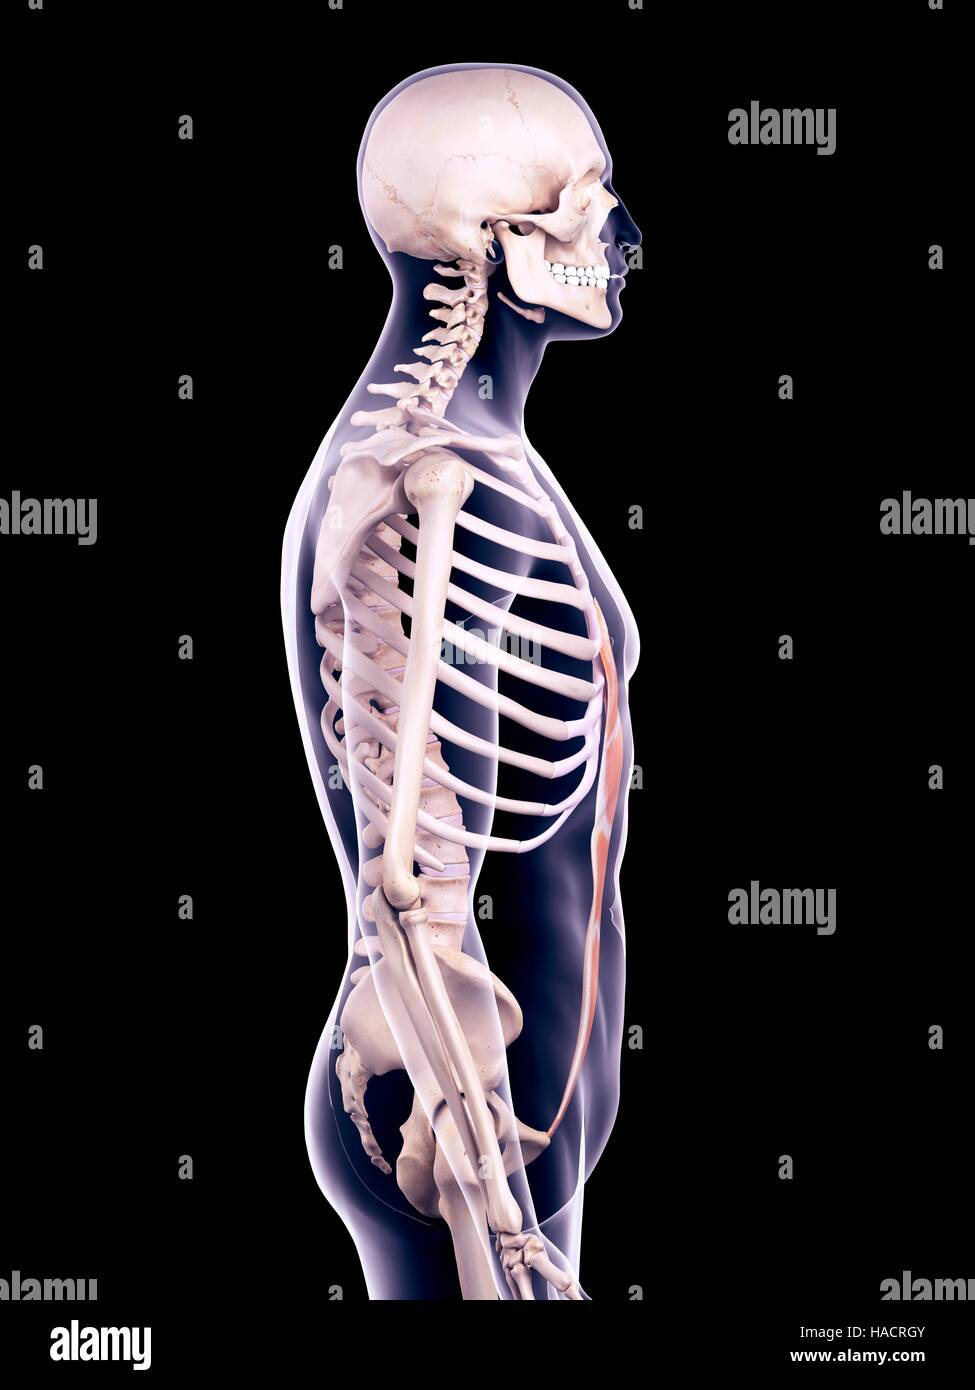 Illustration Of The Rectus Abdominis Muscle Stock Photo 126901067